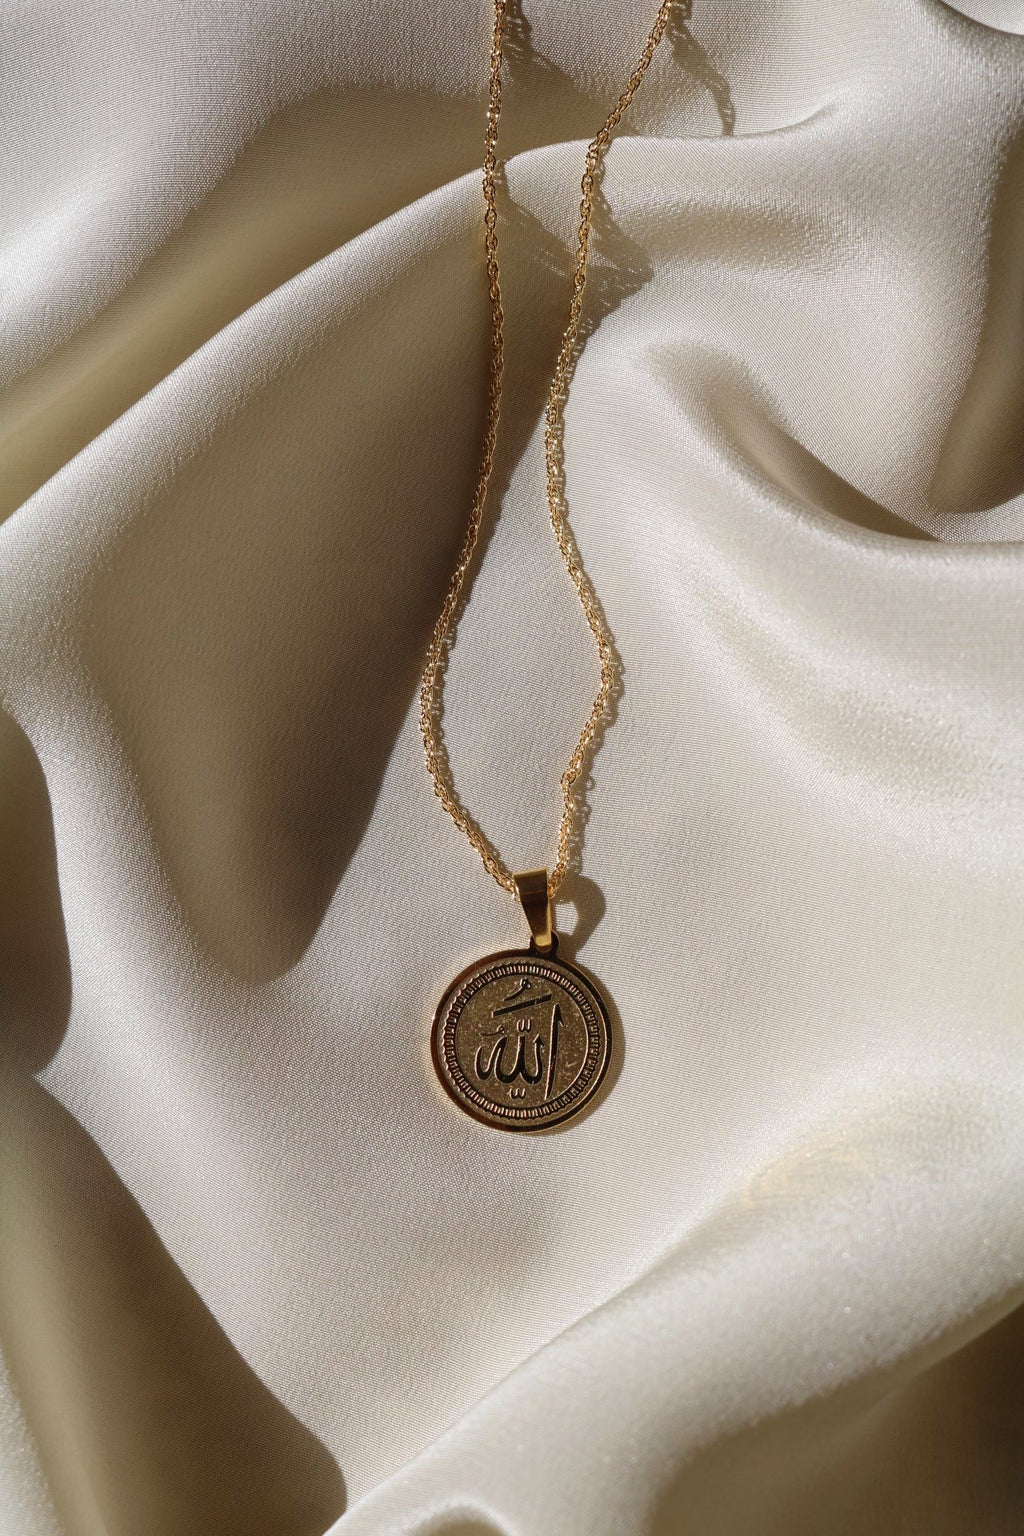 Allah Medallion Necklace - Gold Filled